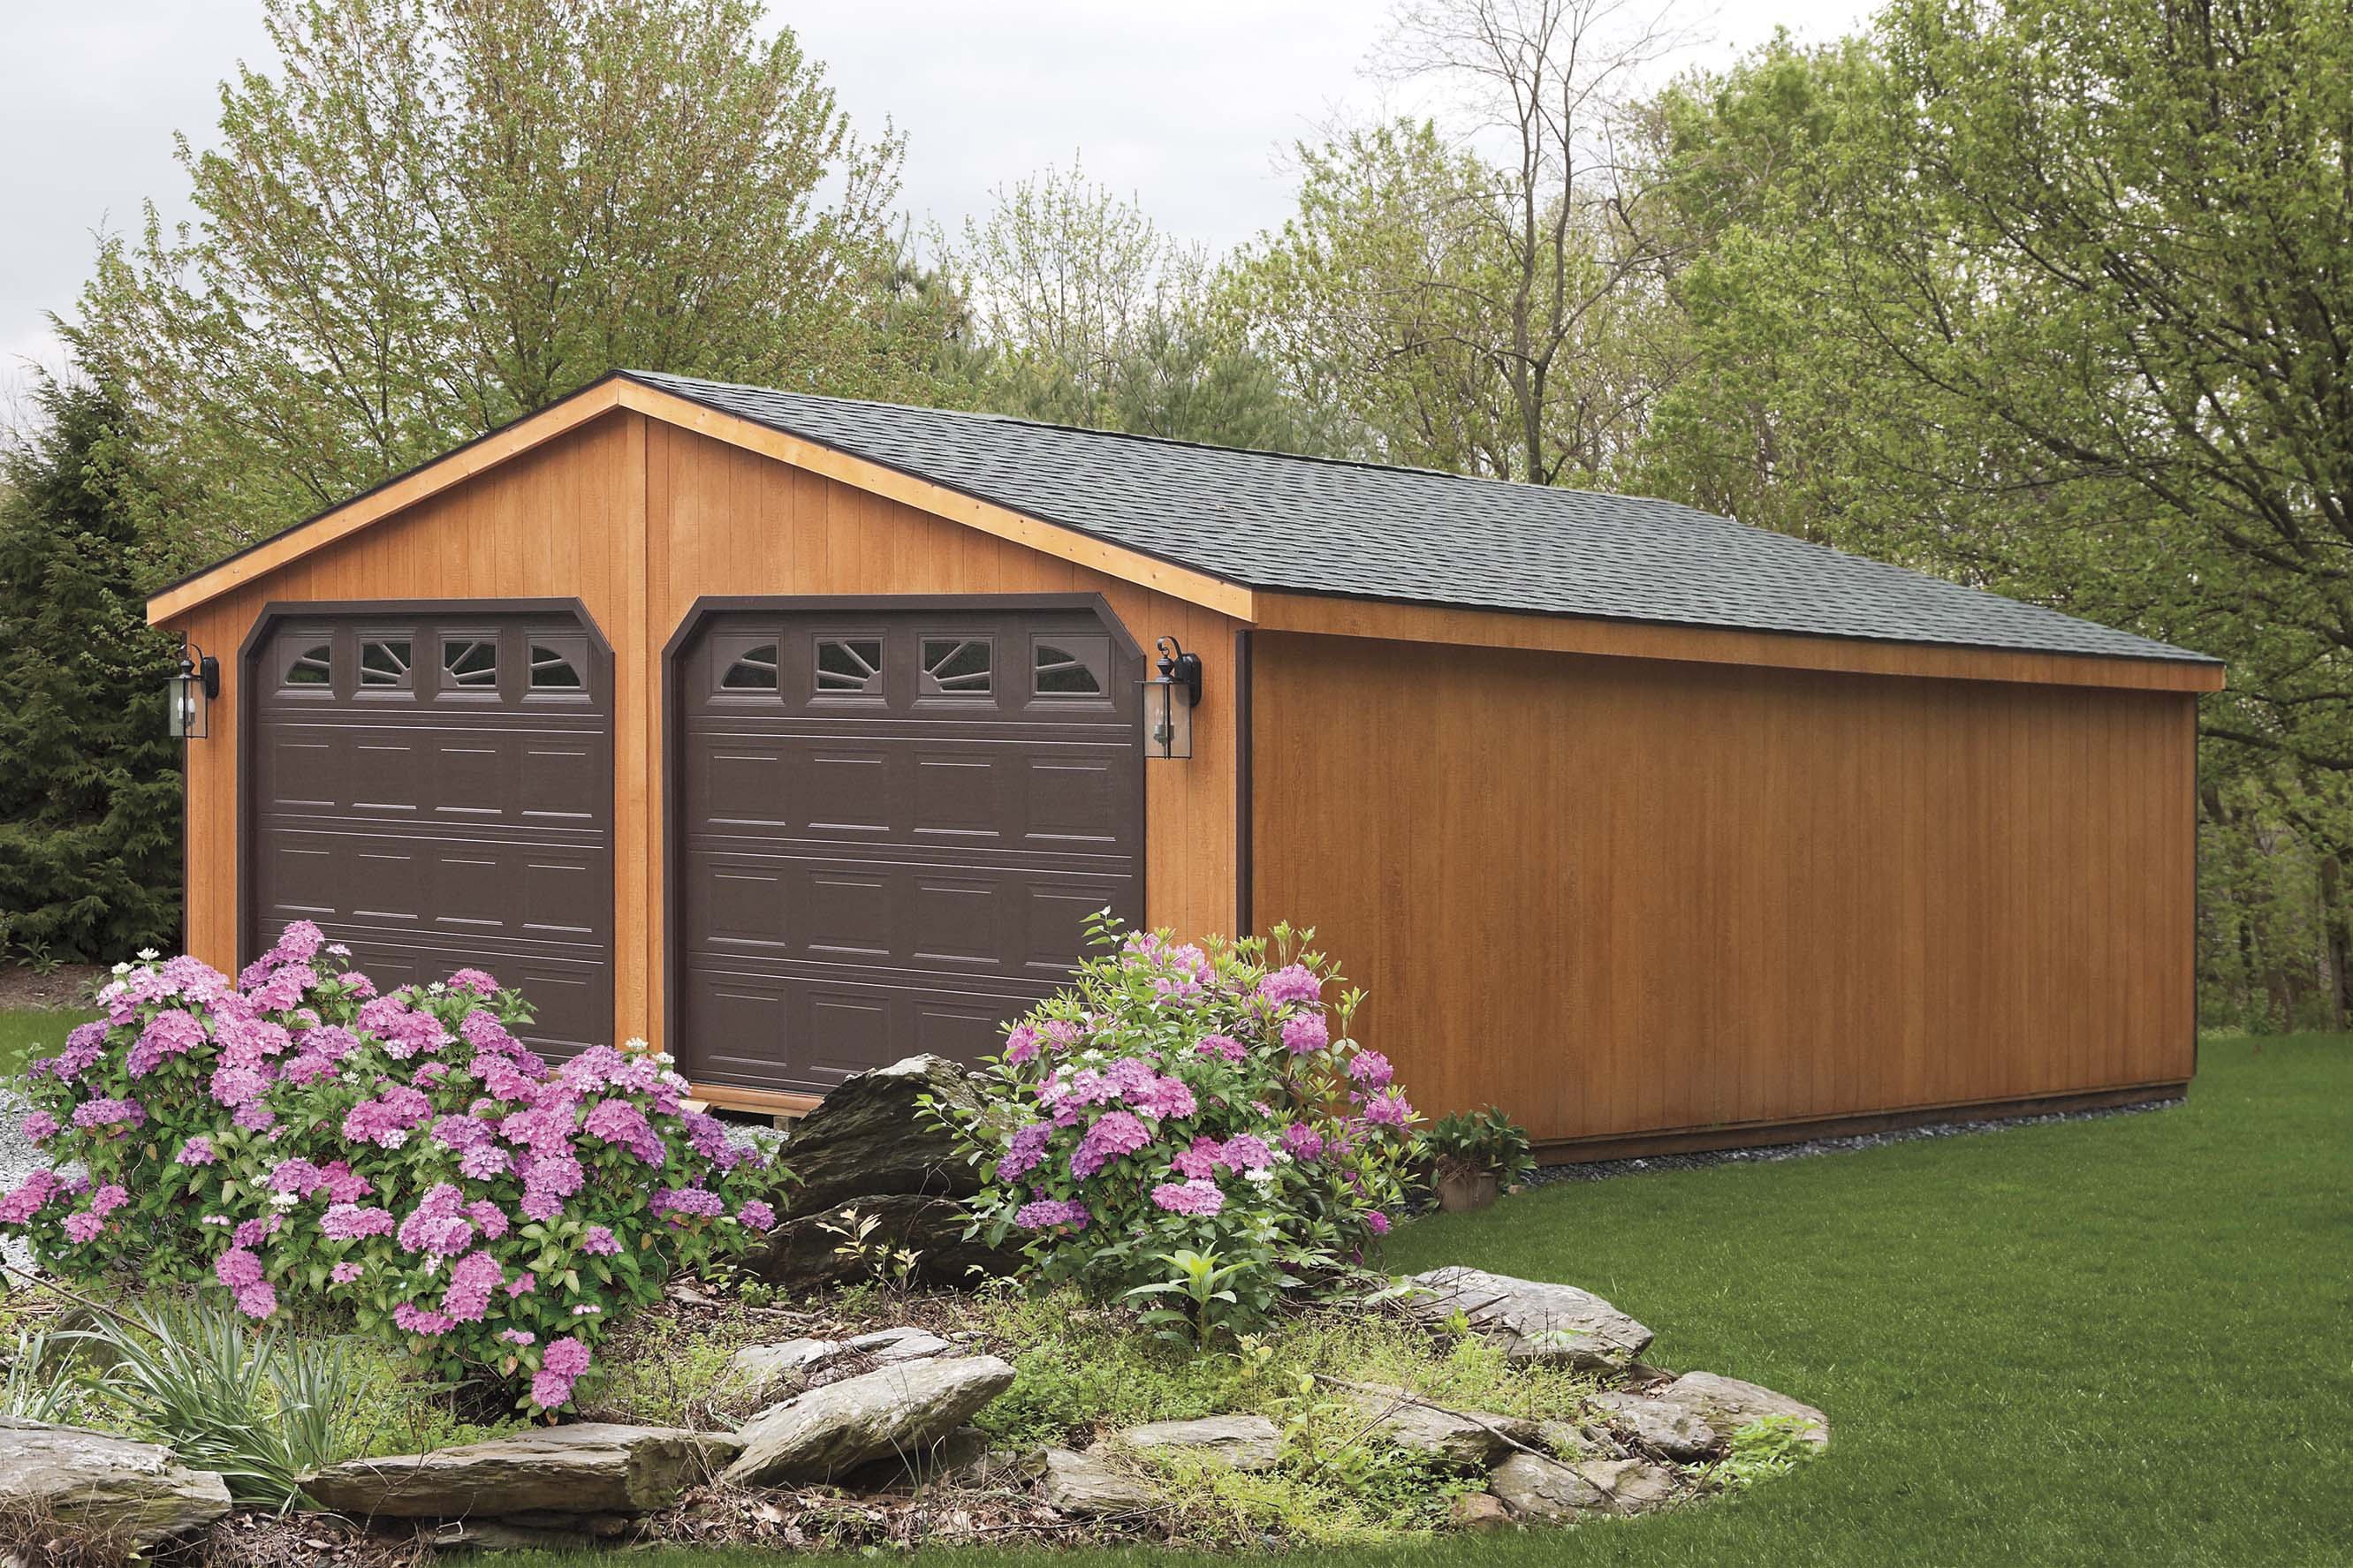 kits pine sheds products car garage barns garages ridge